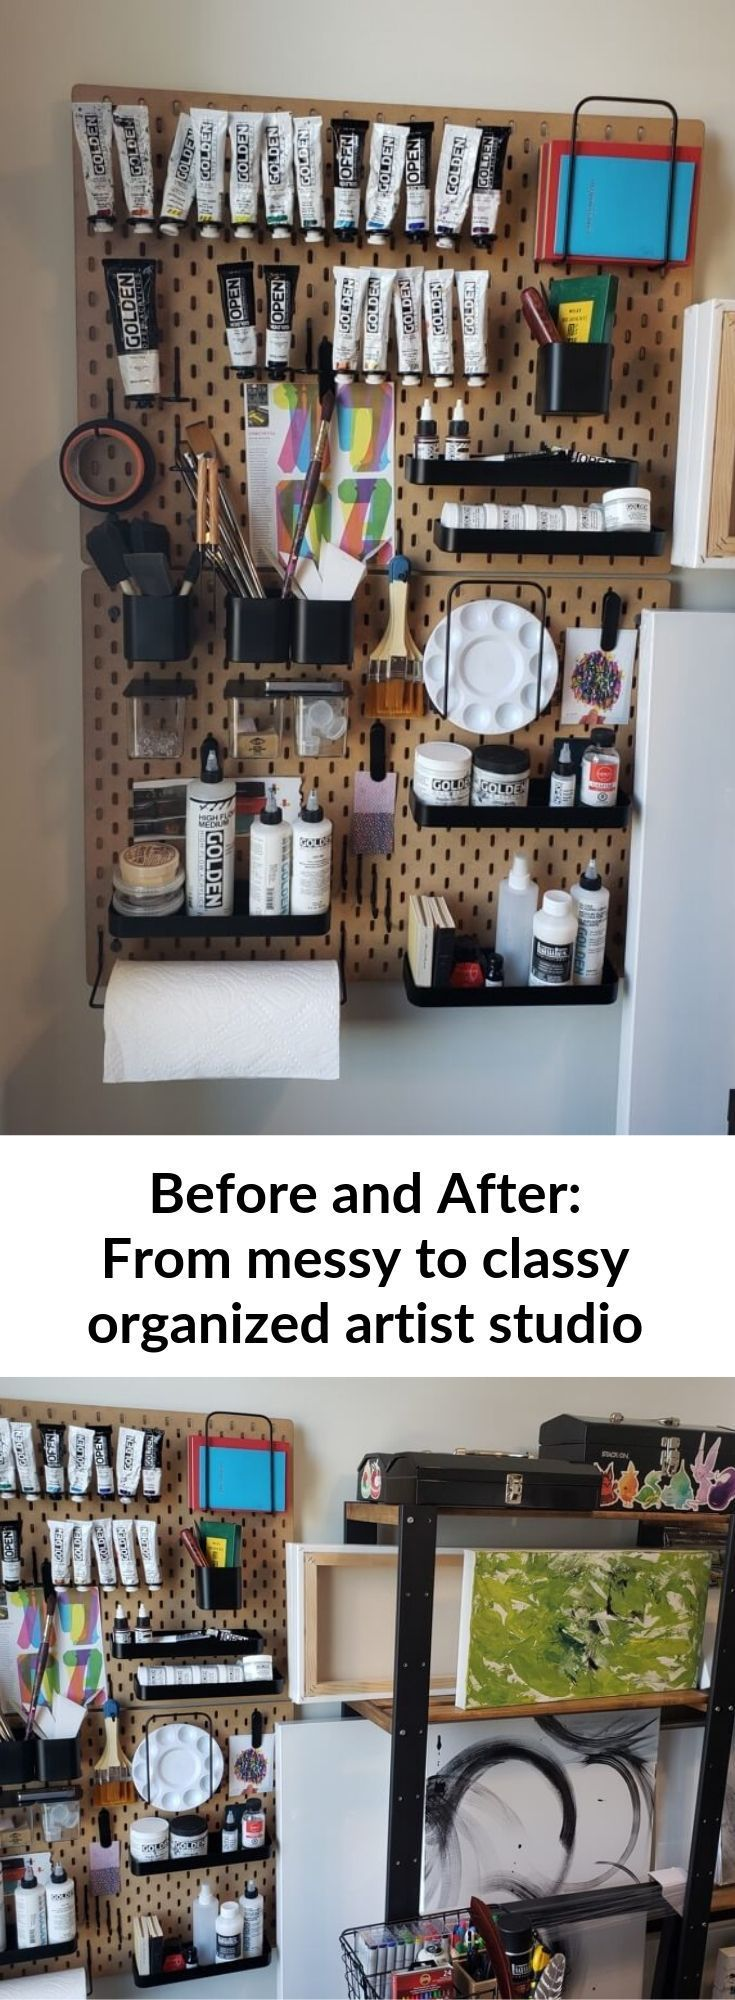 From cluttered to classy organized art canvas storage in